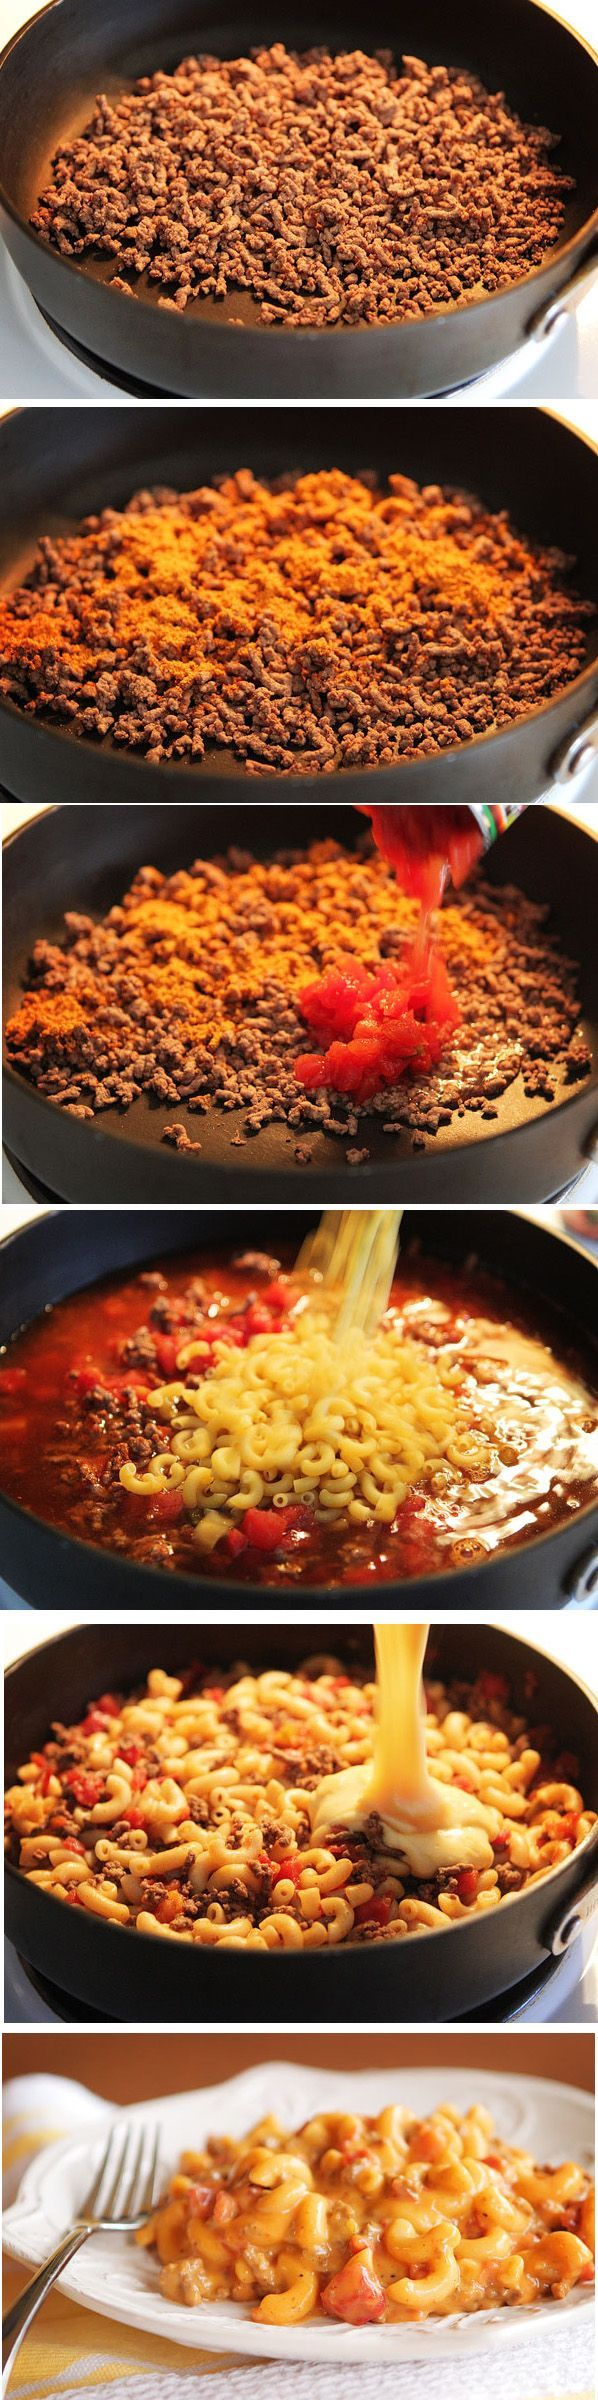 Ingredients 1 lb lean hamburger meat 1 pkg taco seasoning 1 can Rotel tomatoes and green chilies 2 cups beef broth 1 cup elbow macaroni.